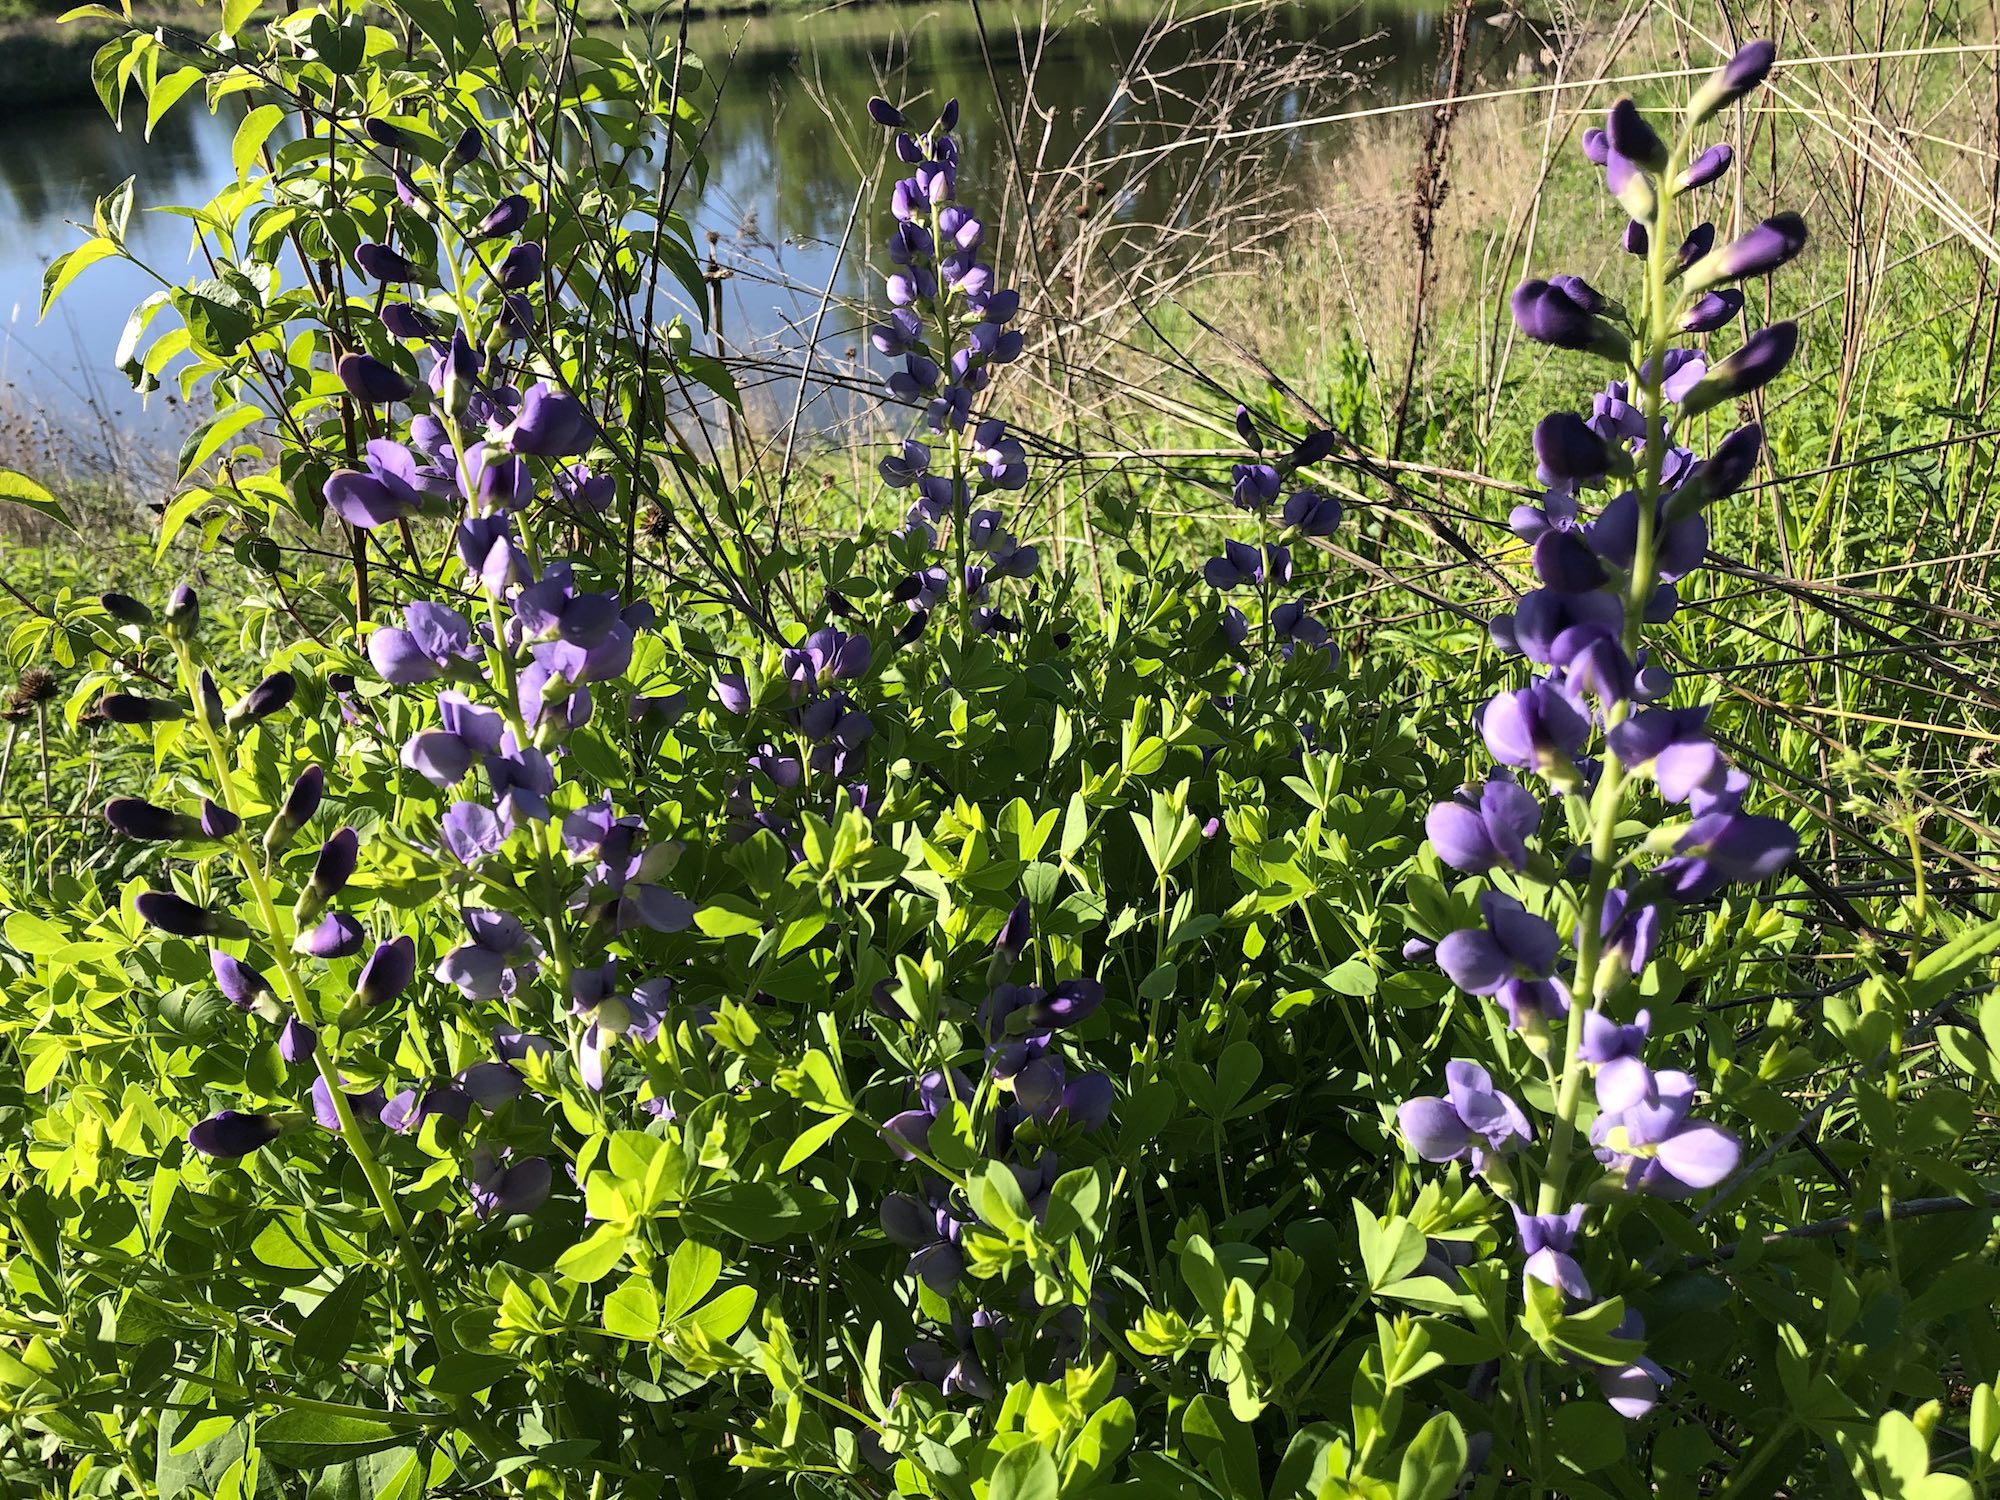 Blue False Indigo on the banks of the retaining pond on the corner of Nakoma Road and Manitou Way on May 30, 2020.